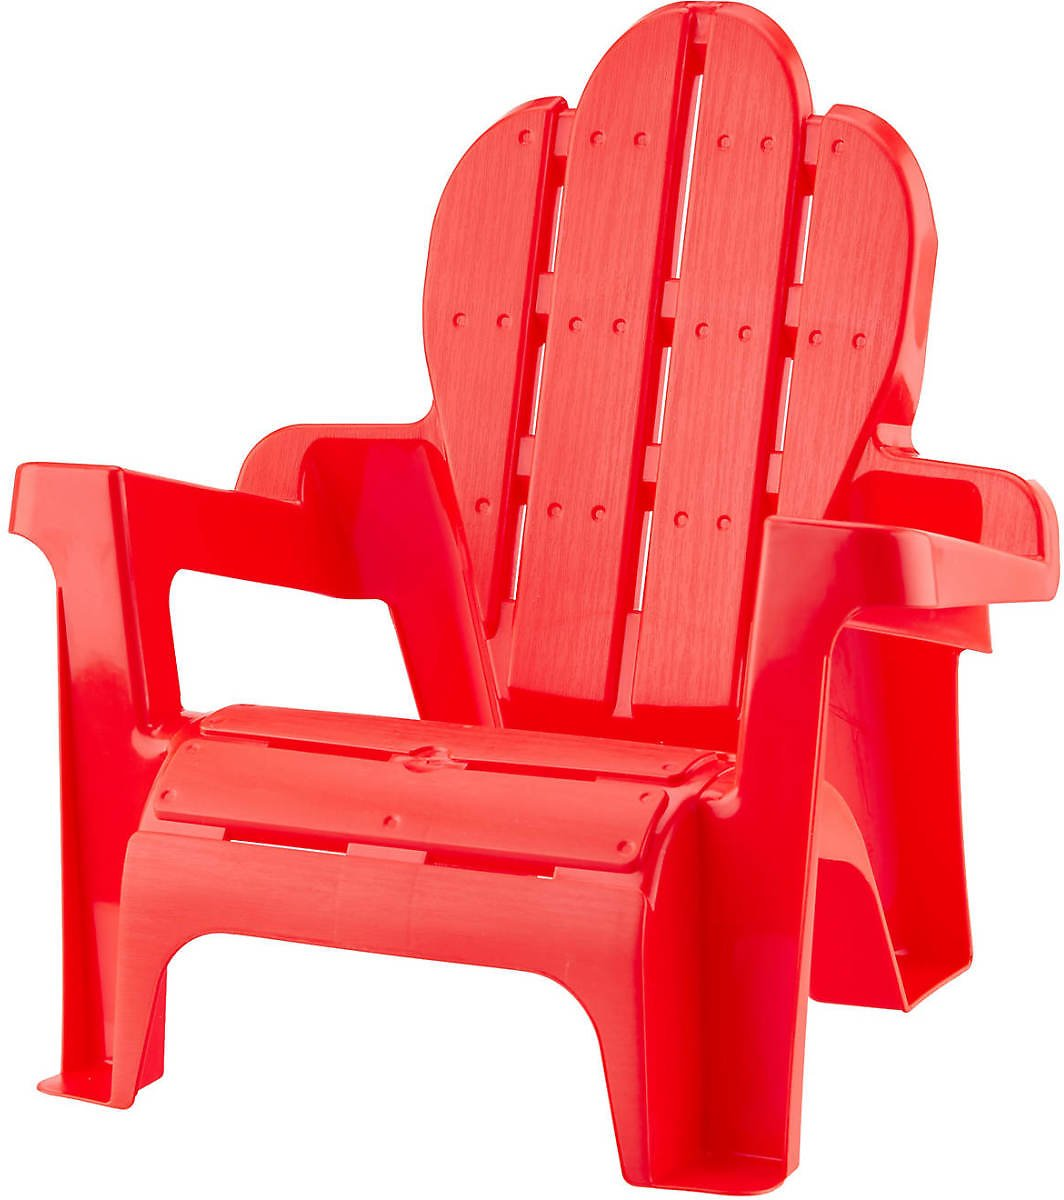 American Plastic Toys Adirondack Chair (In Store)